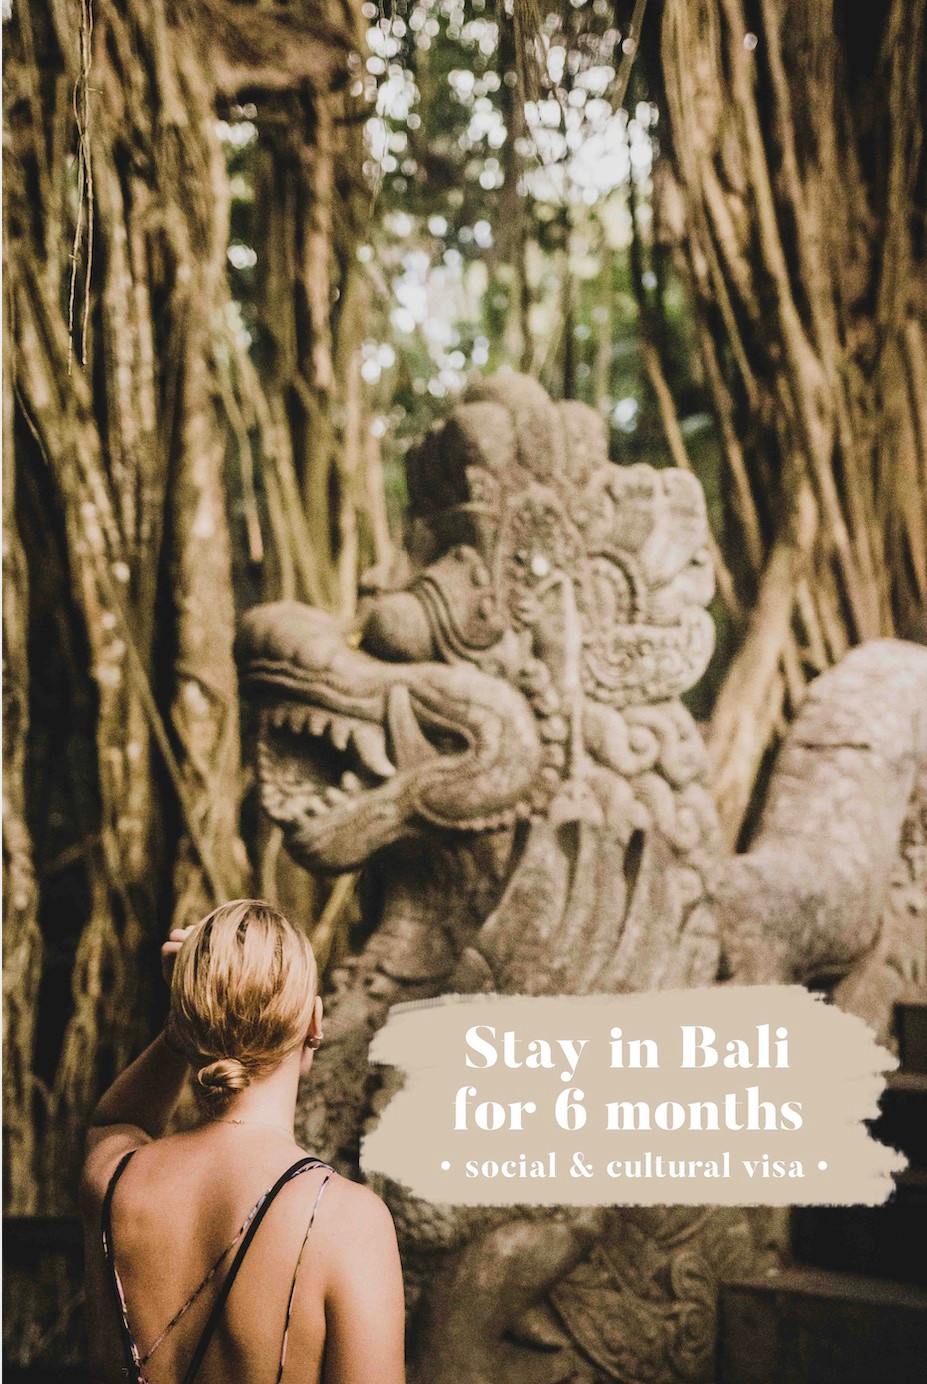 Stay in Bali for 6 months (social and cultural visa)